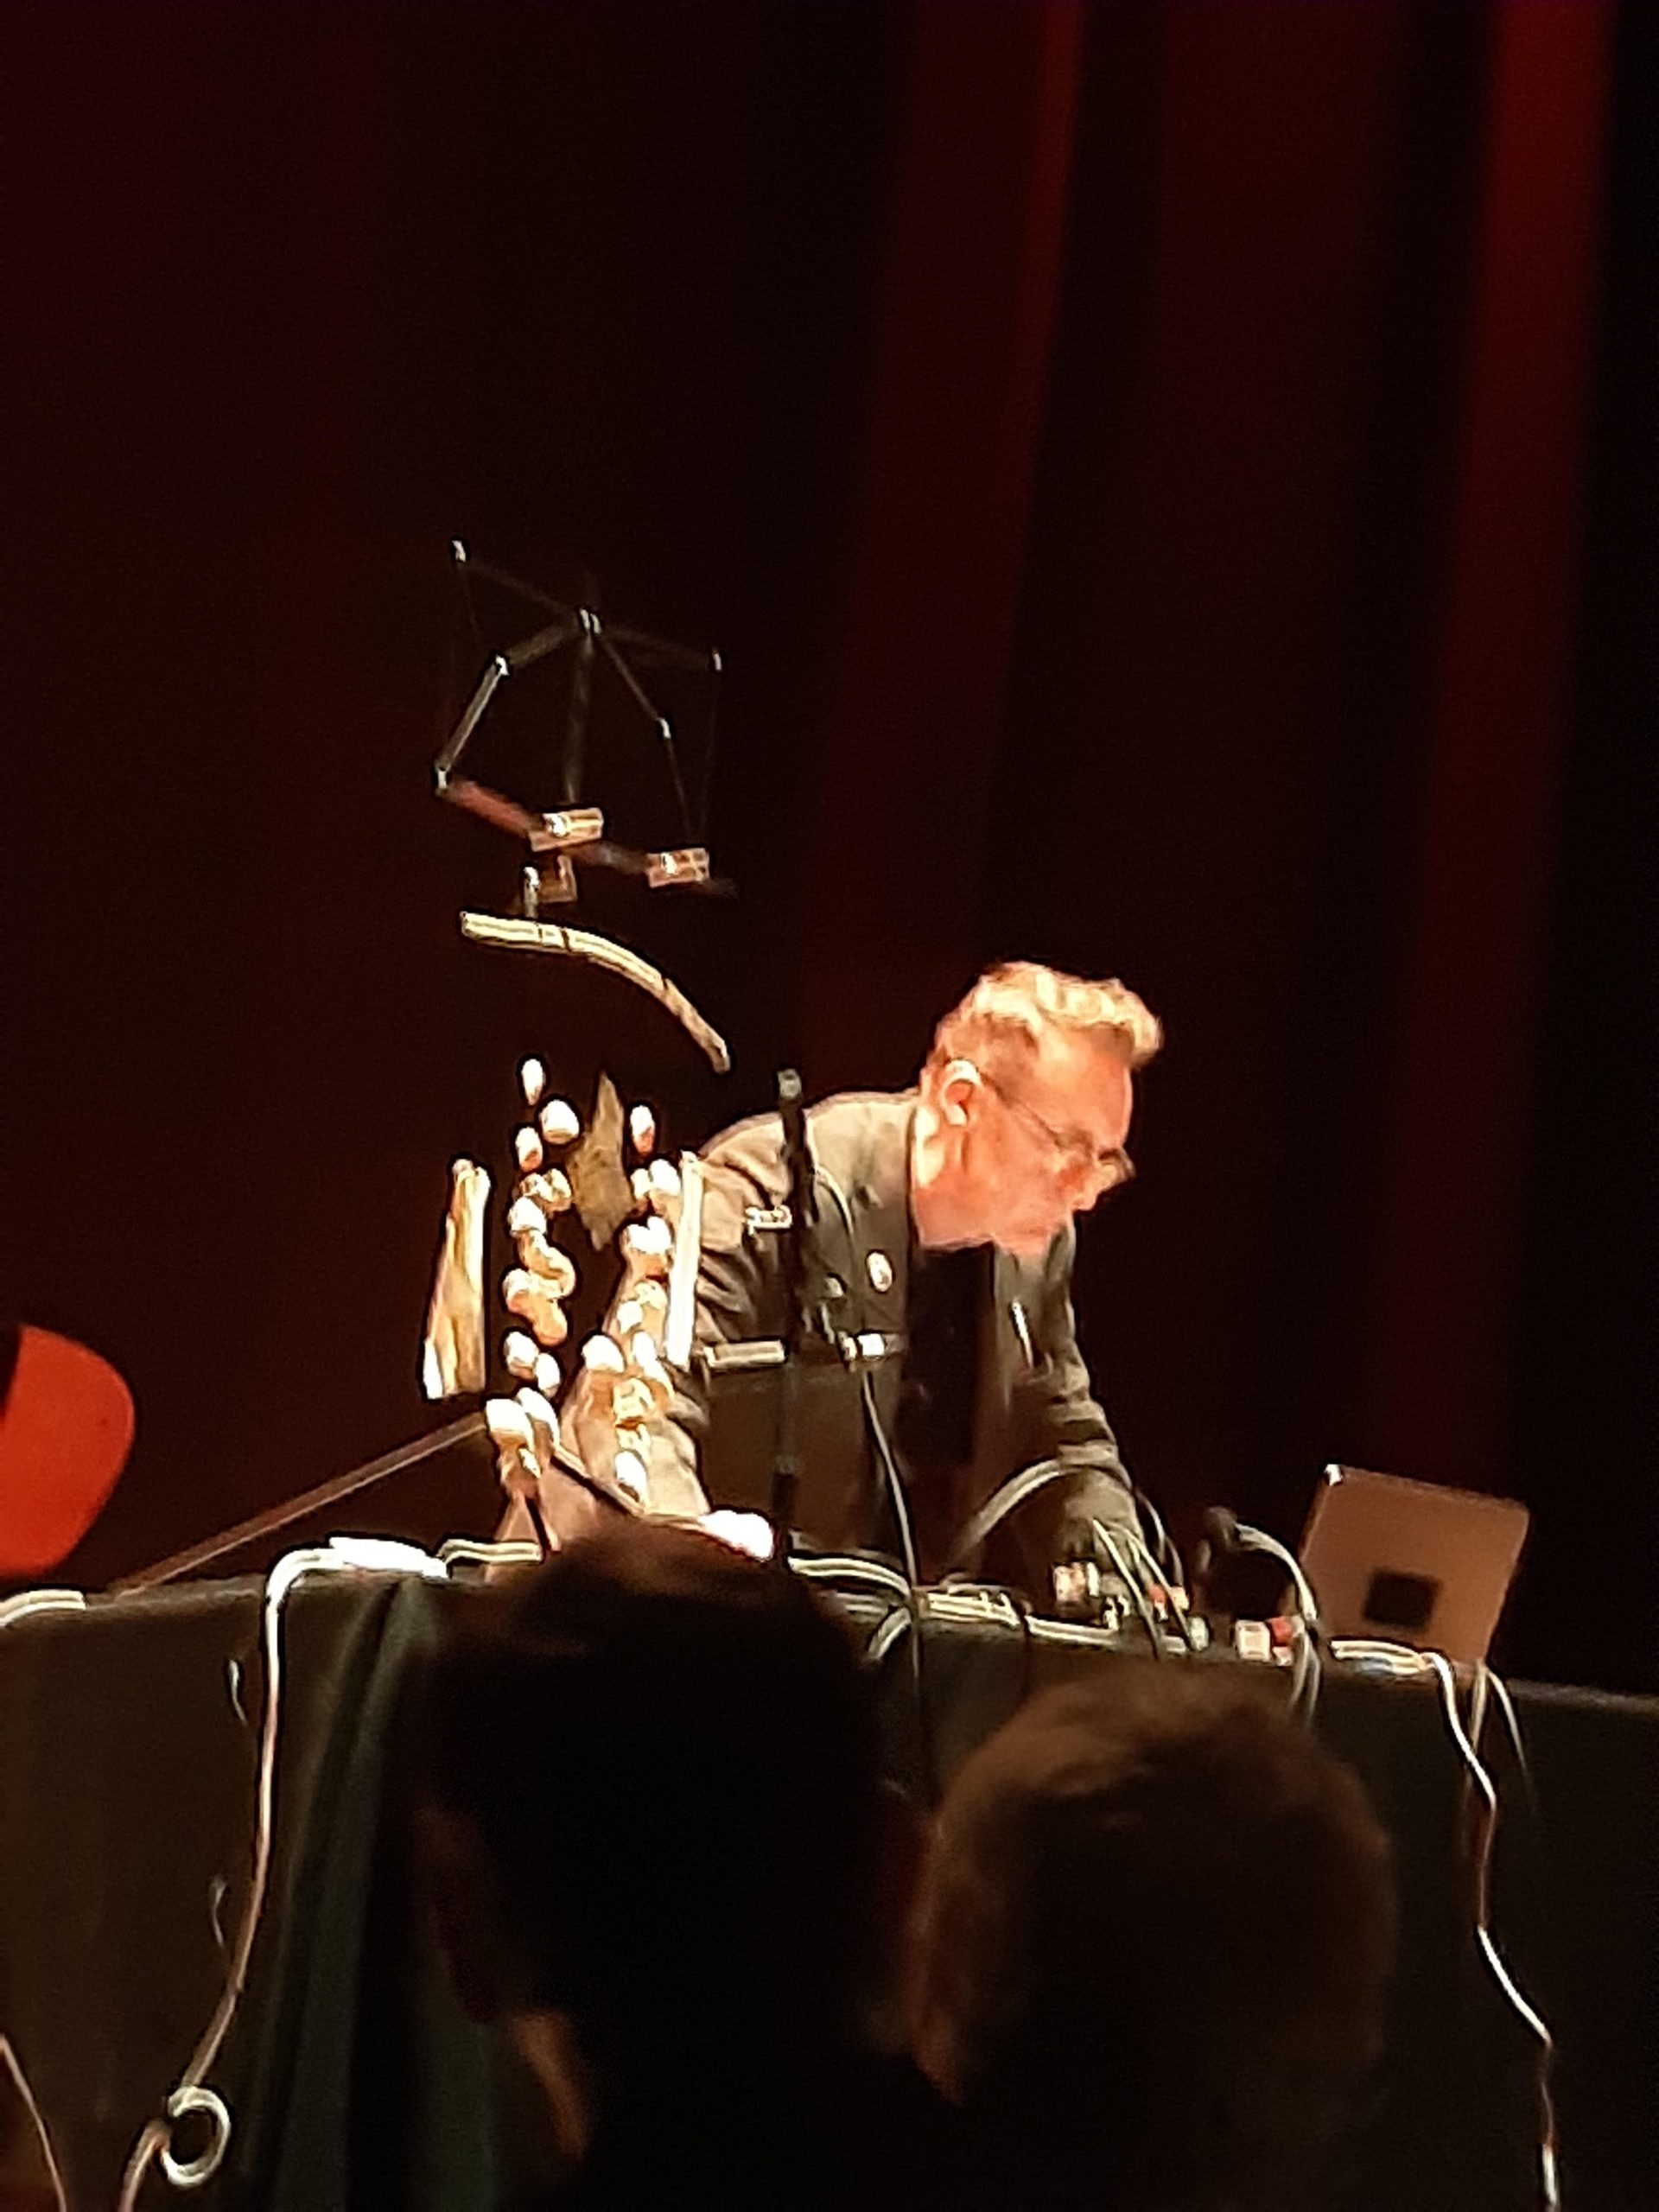 Michael Begg live at Queens Hall